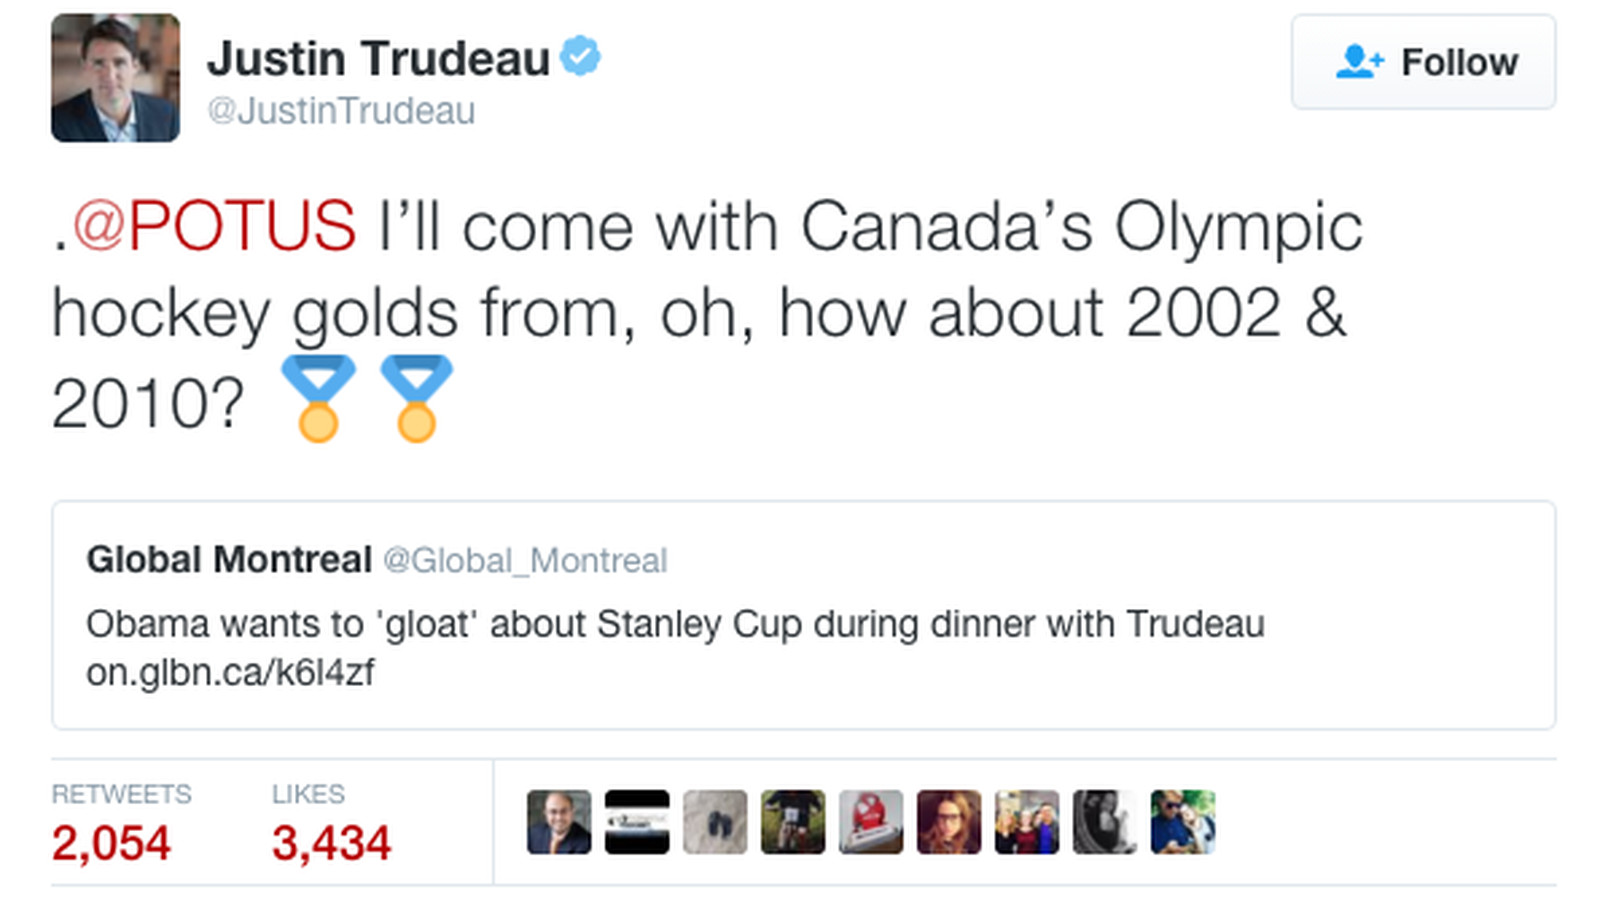 Canadian prime minister burns Barack Obama following his Stanley Cup gloating